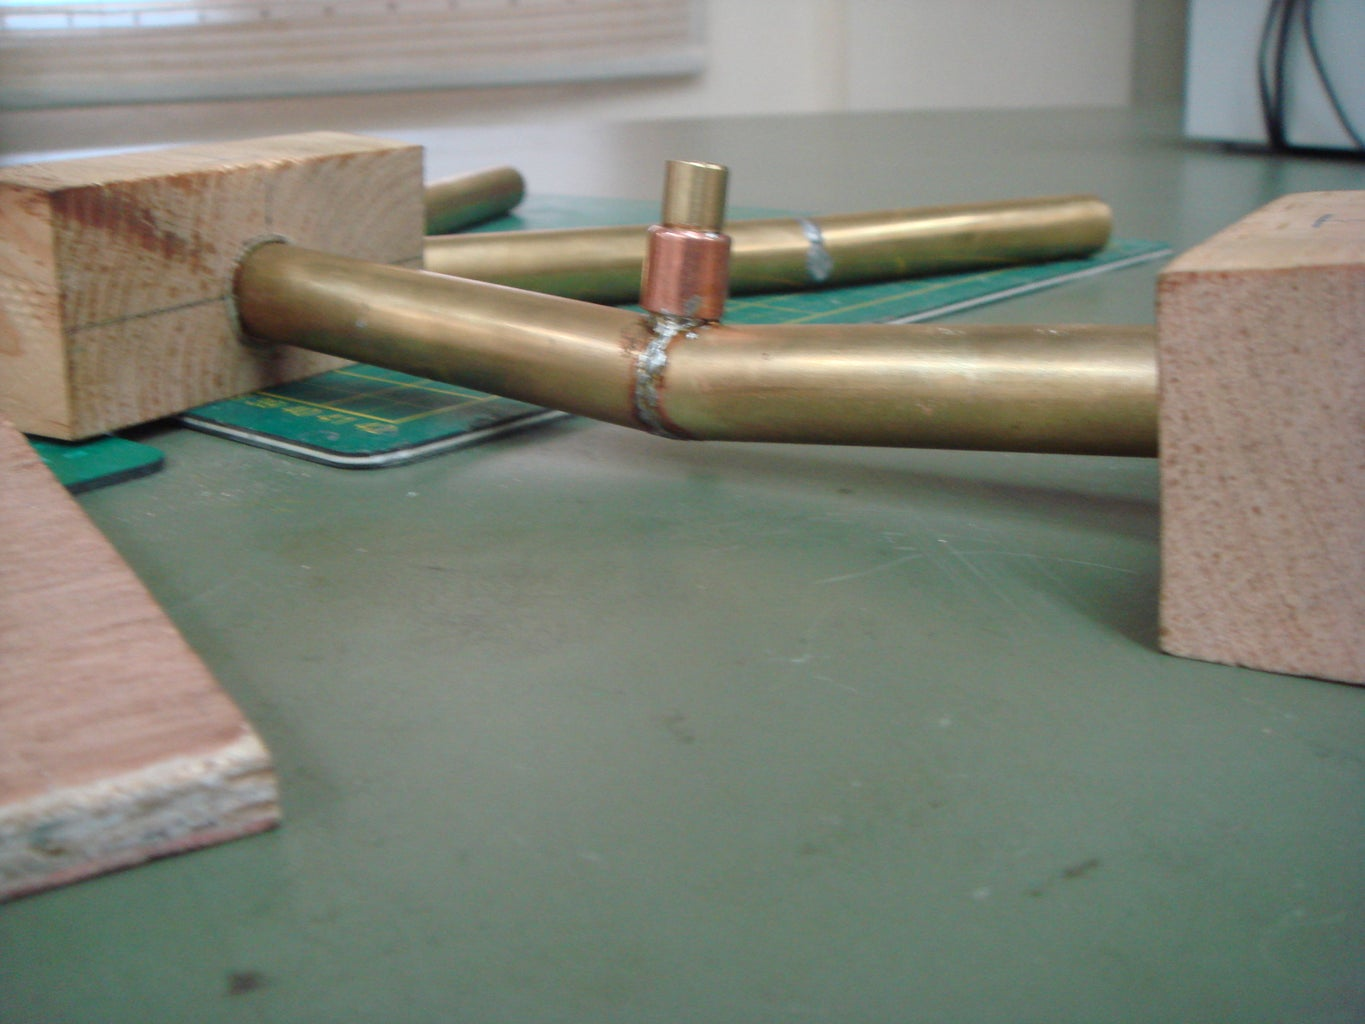 Building What We Call the 'VT- Hub' and Brass Pipe Soldering